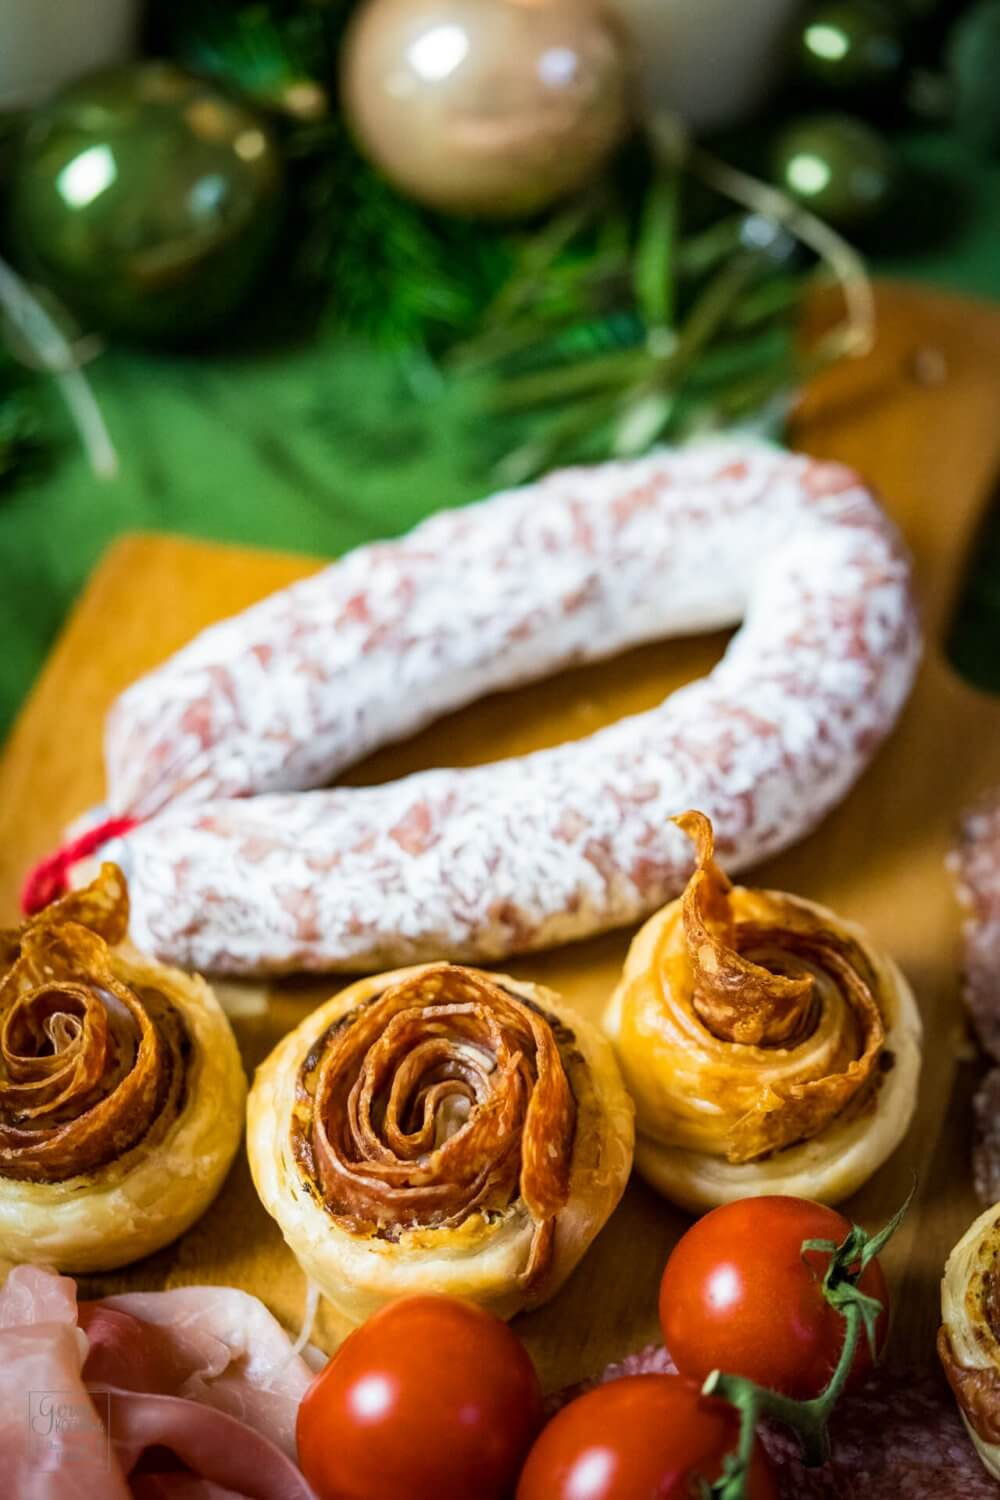 Salami-Blätterteigrosen – Fingerfood für den Adventsbrunch